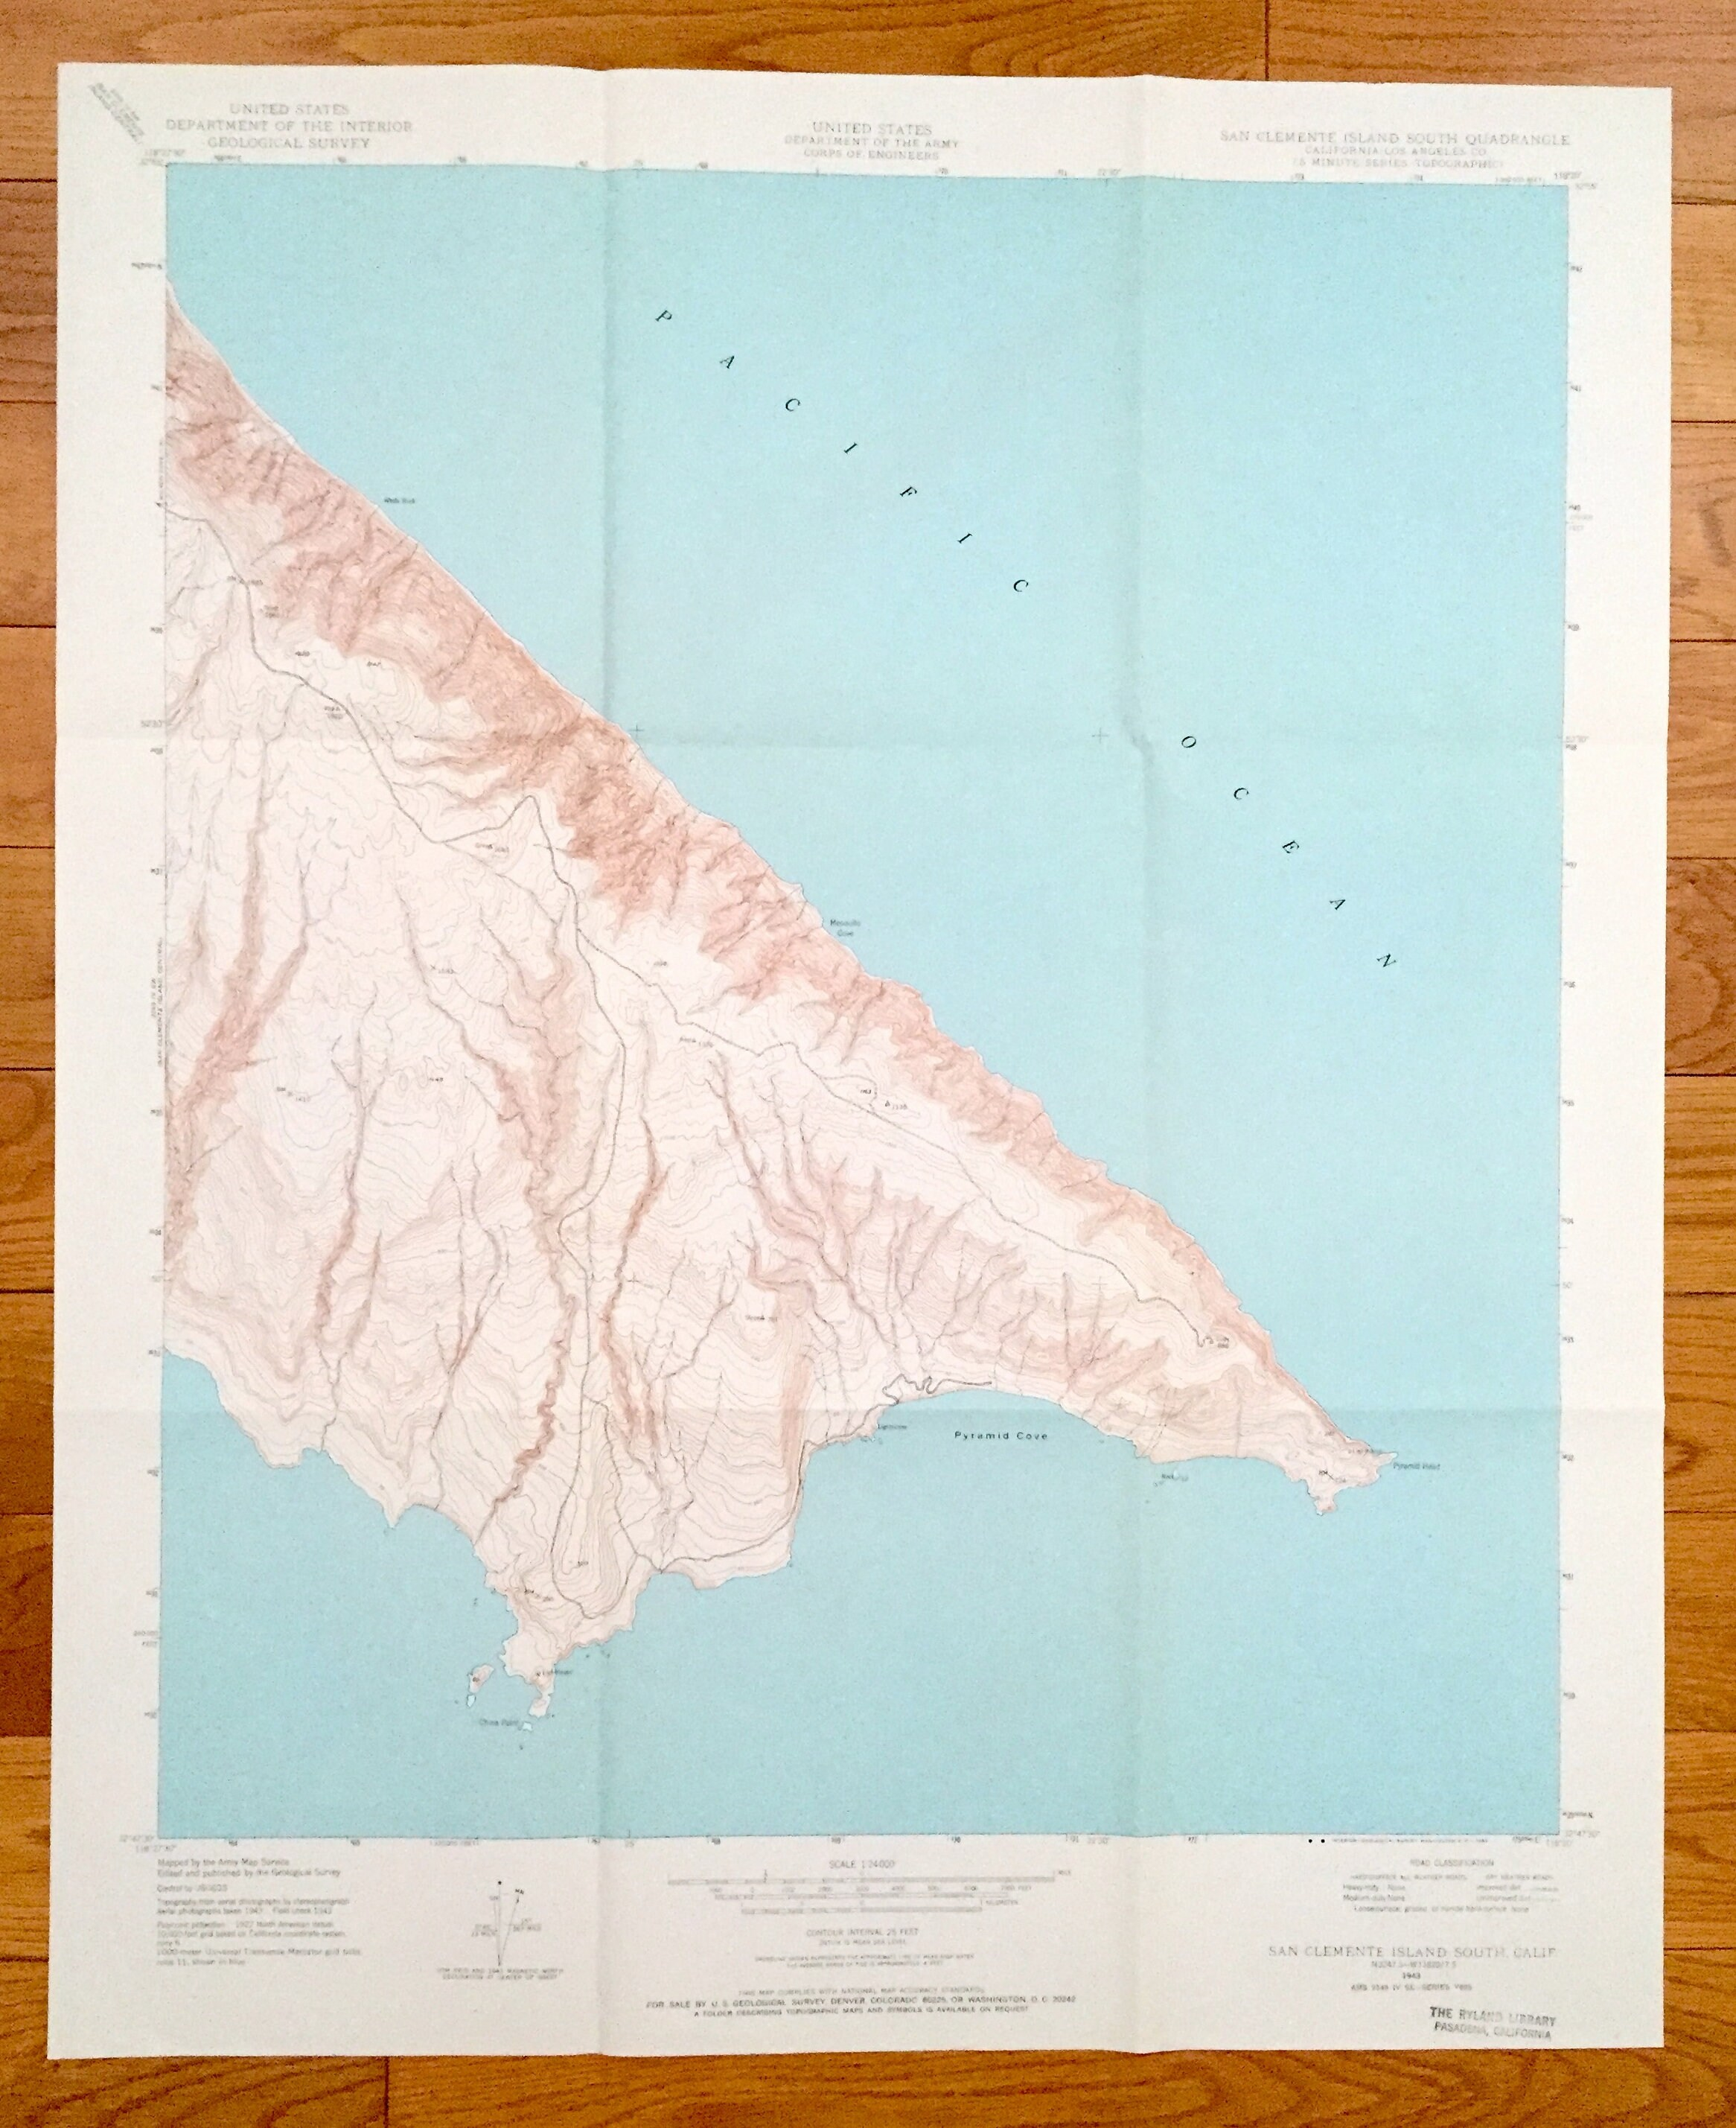 Antique San Clemente Island South California 1943 US   Etsy on